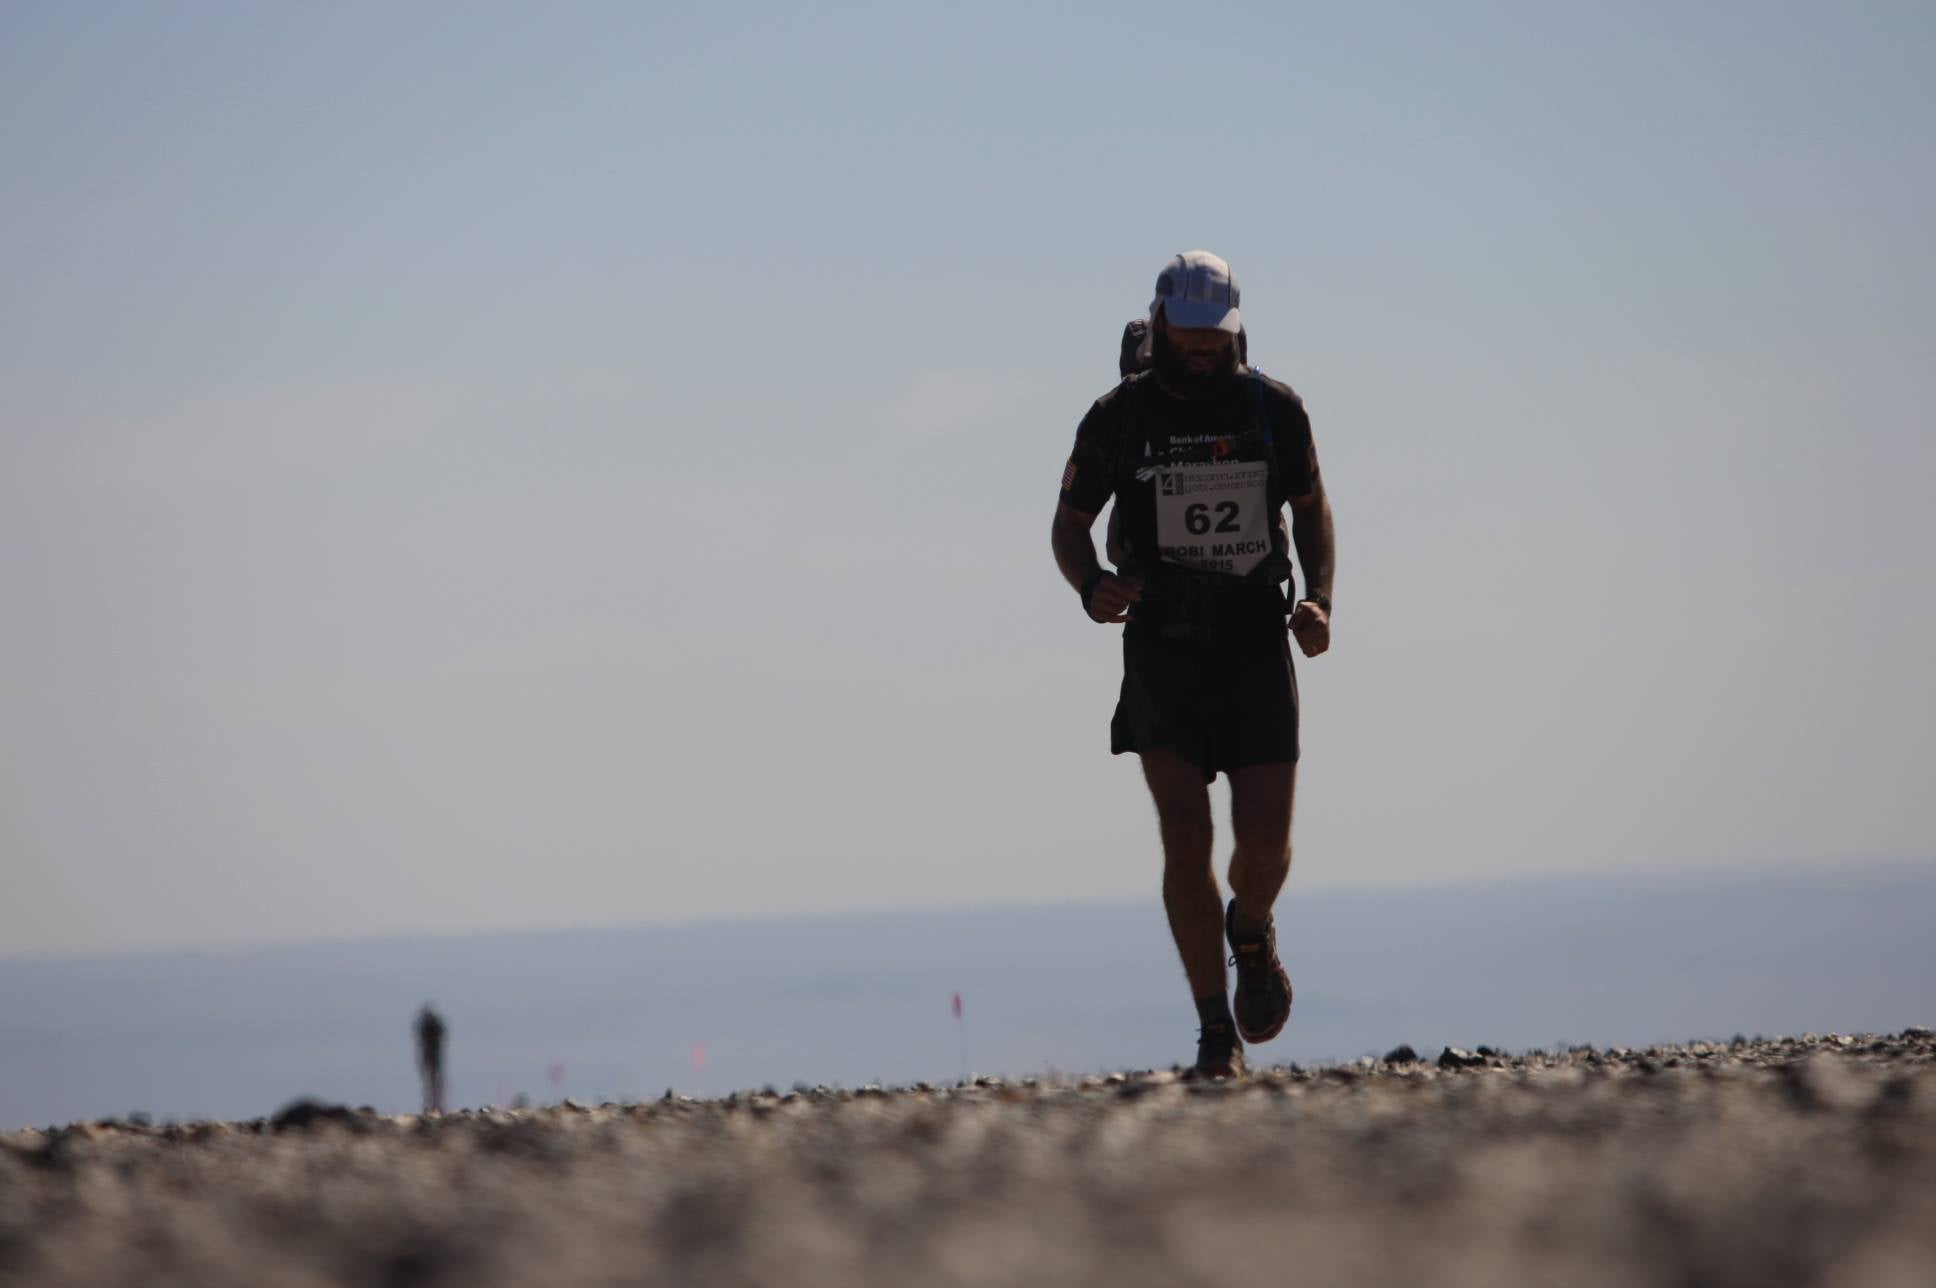 For the Love of Self-Supported Stage Races